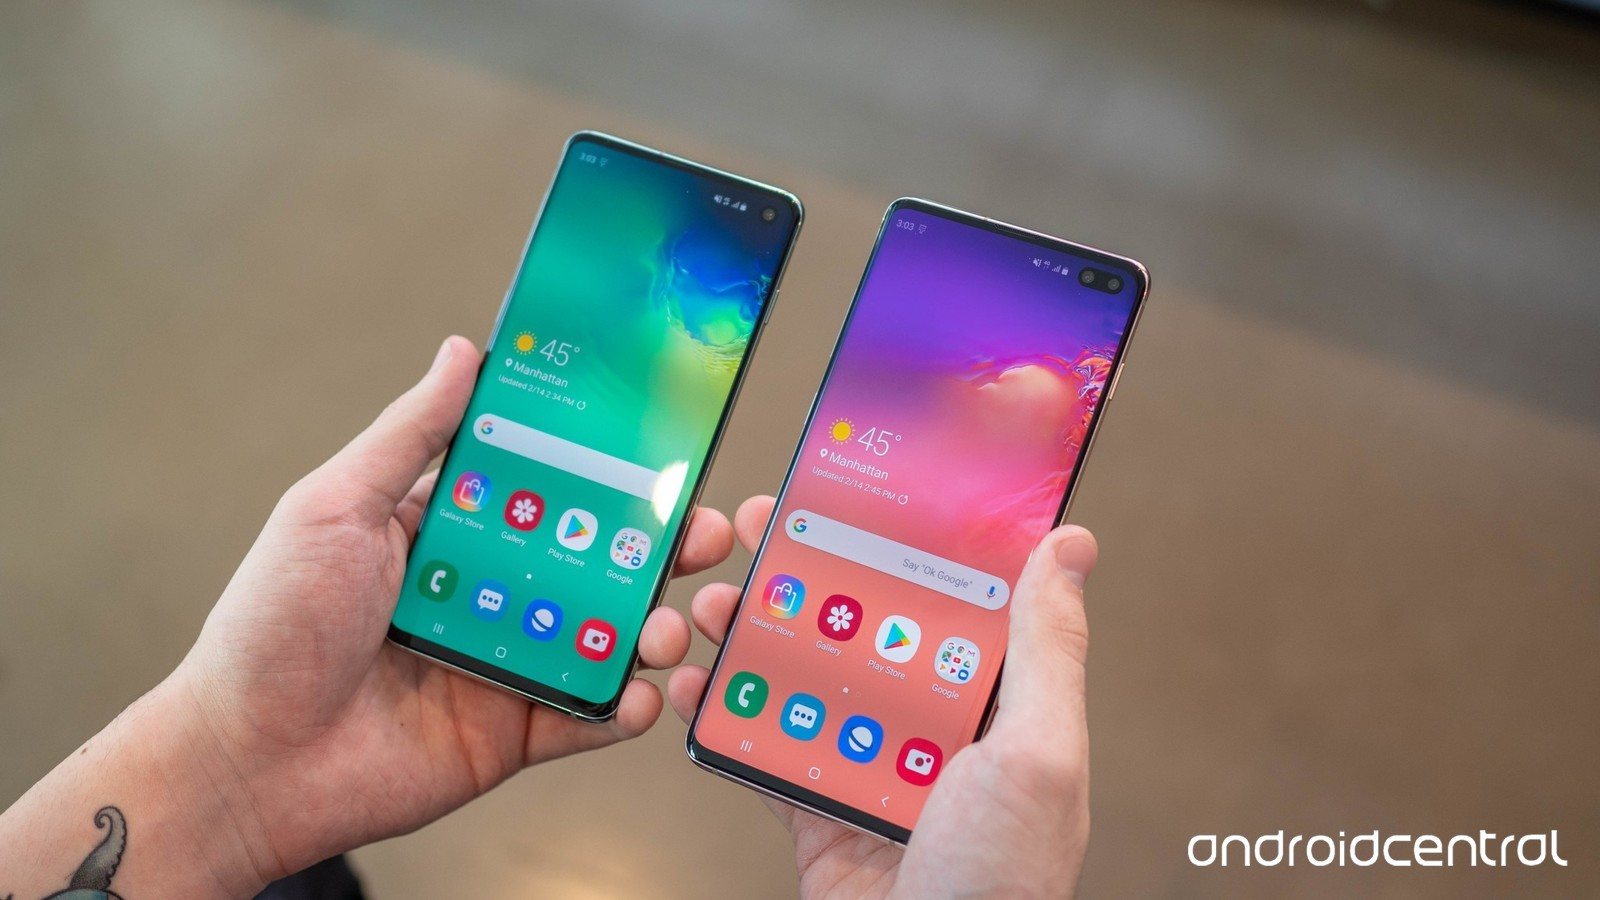 samsung-galaxy-s10-s10plus-front-2.